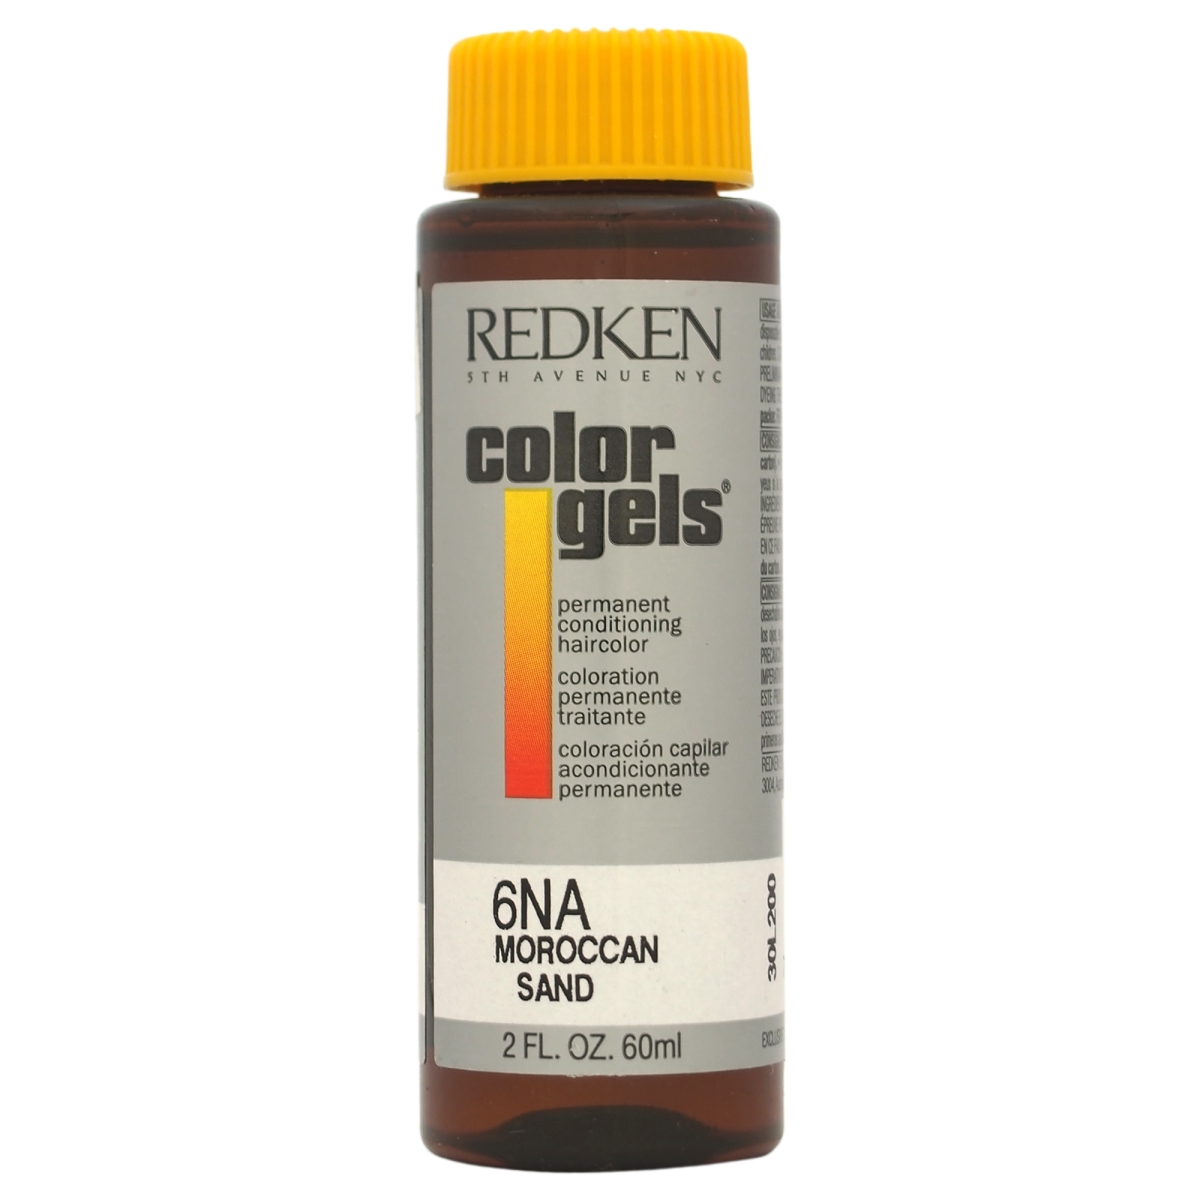 Redken U-HC-8185 2 oz Color Gels Permanent Conditioning Moroccan Sand 6NA Hair Color for Unisex